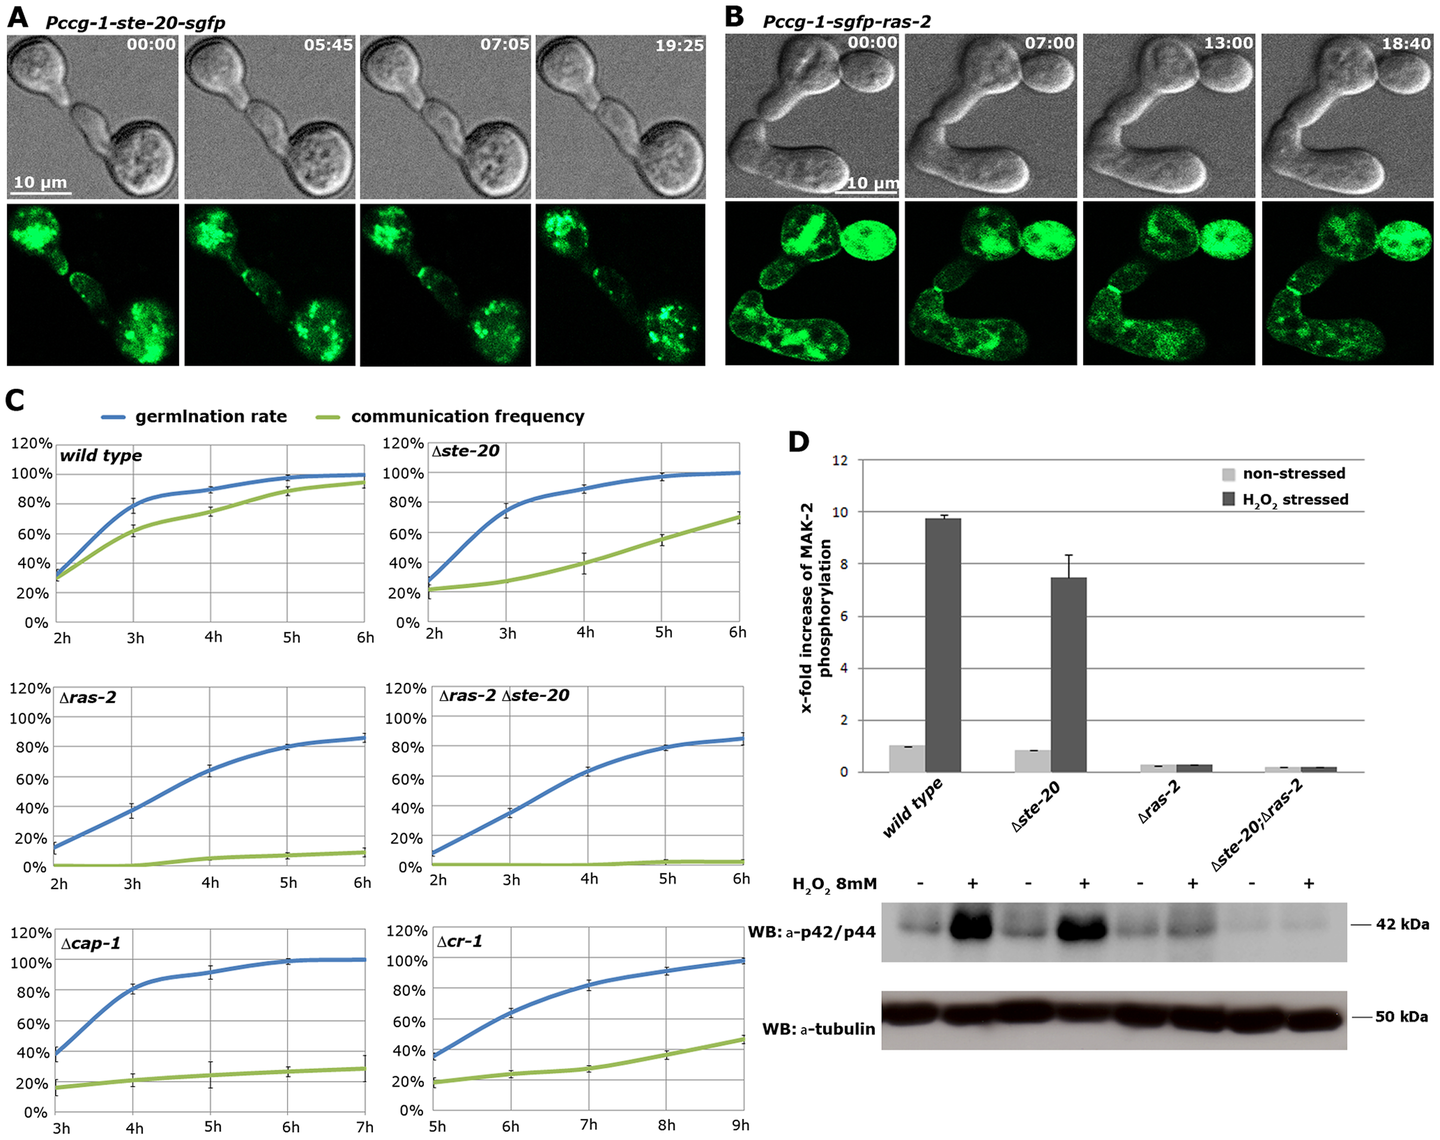 The MAK-2 pathway elements STE-20 and RAS-2 are important for cell-cell communication.